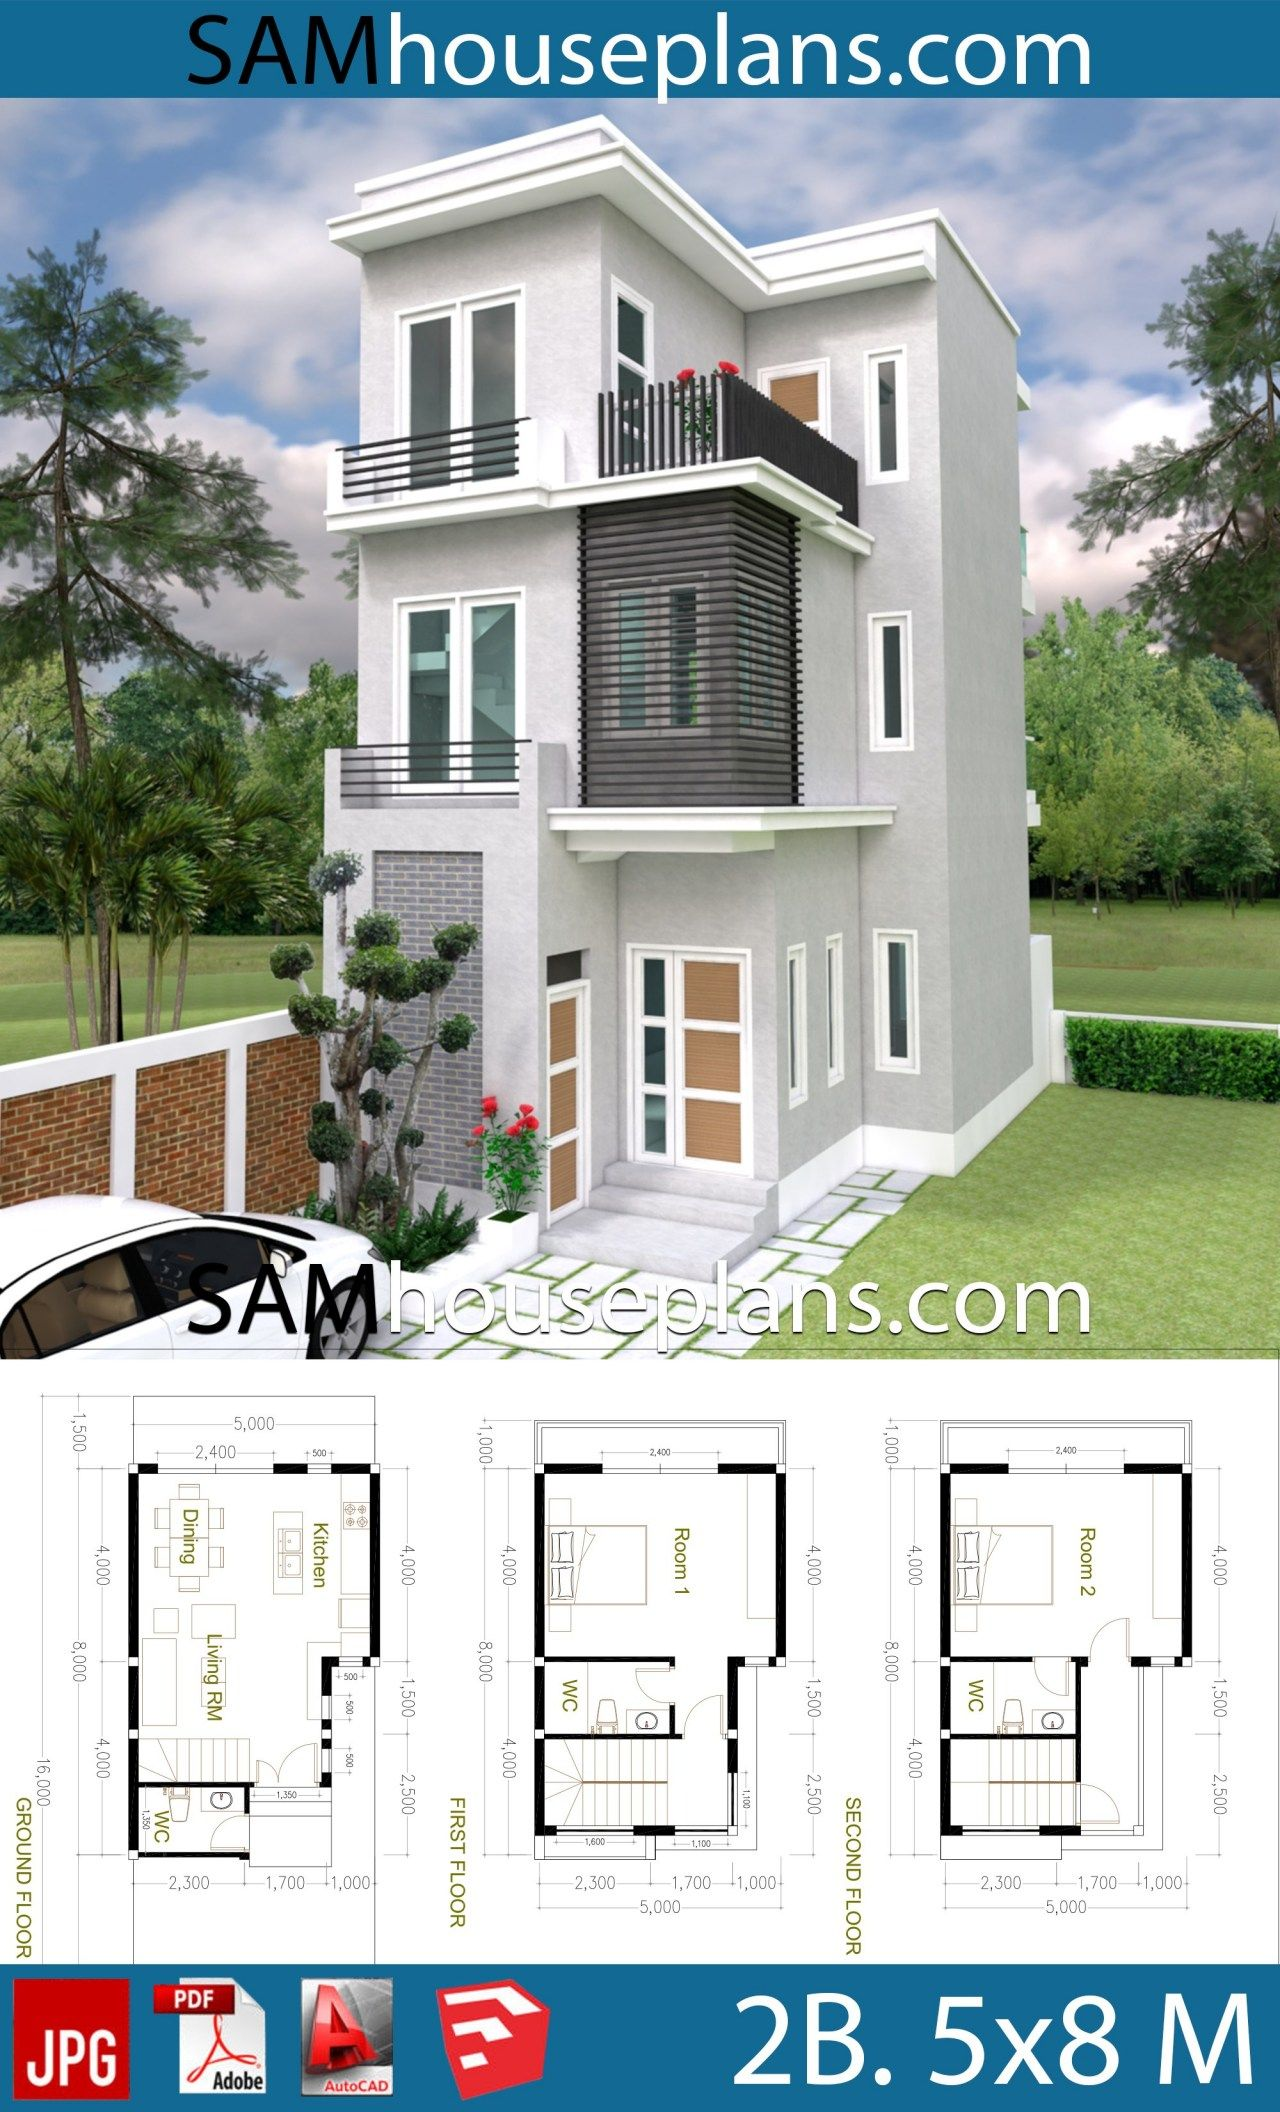 House Plans 5x8 With 2 Bedrooms Sam House Plans Sims House Plans Tiny House Plans House Designs Exterior